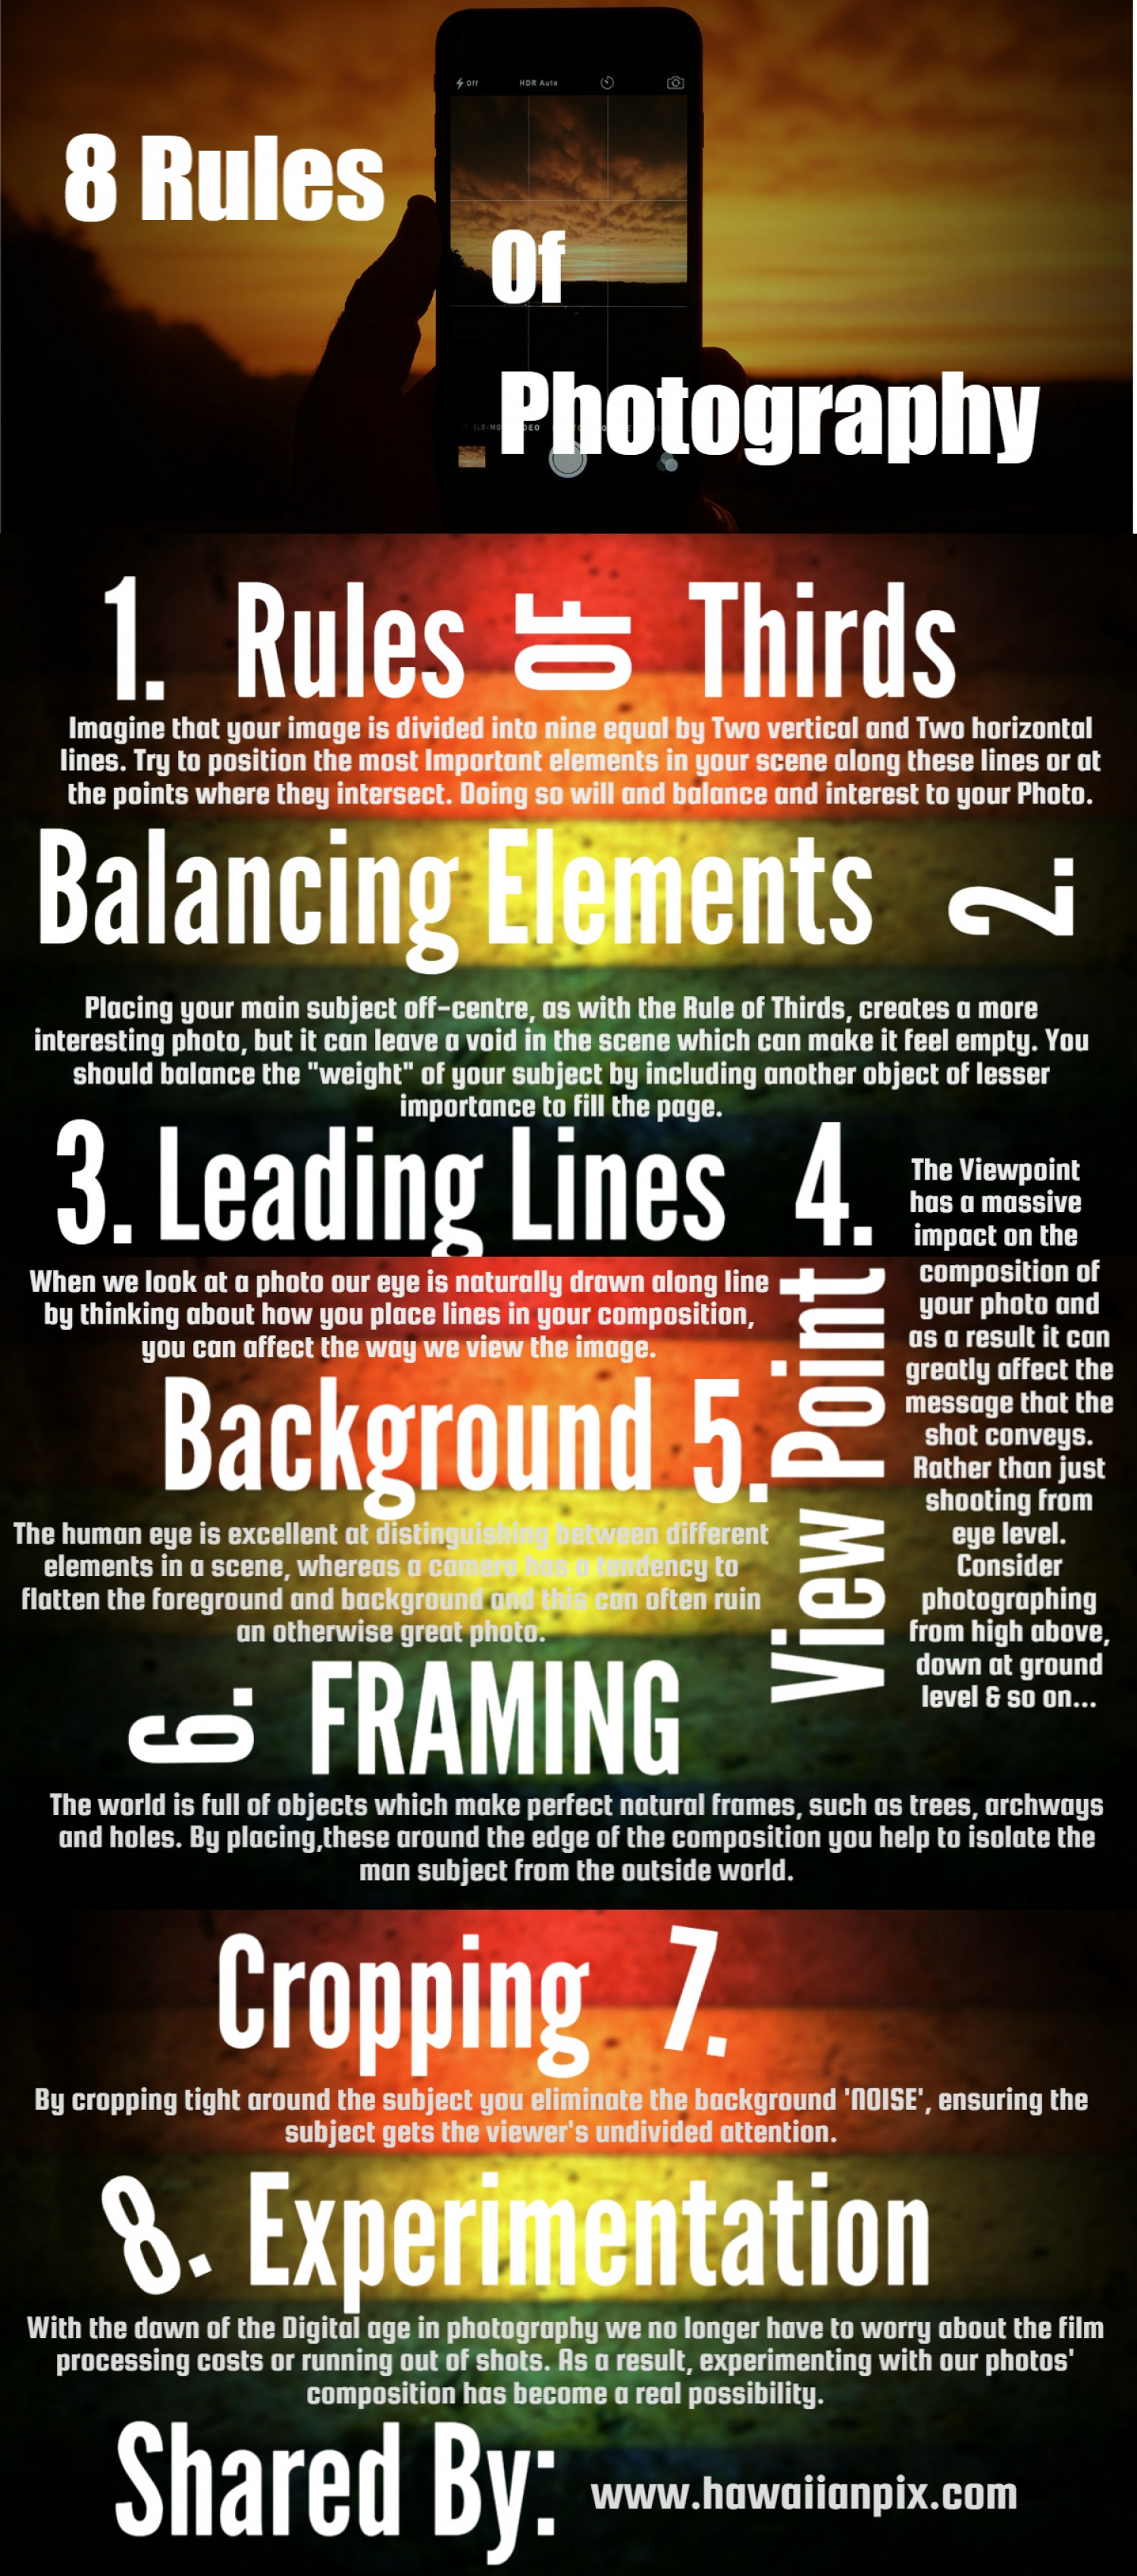 8 Rules of Photography Infographic